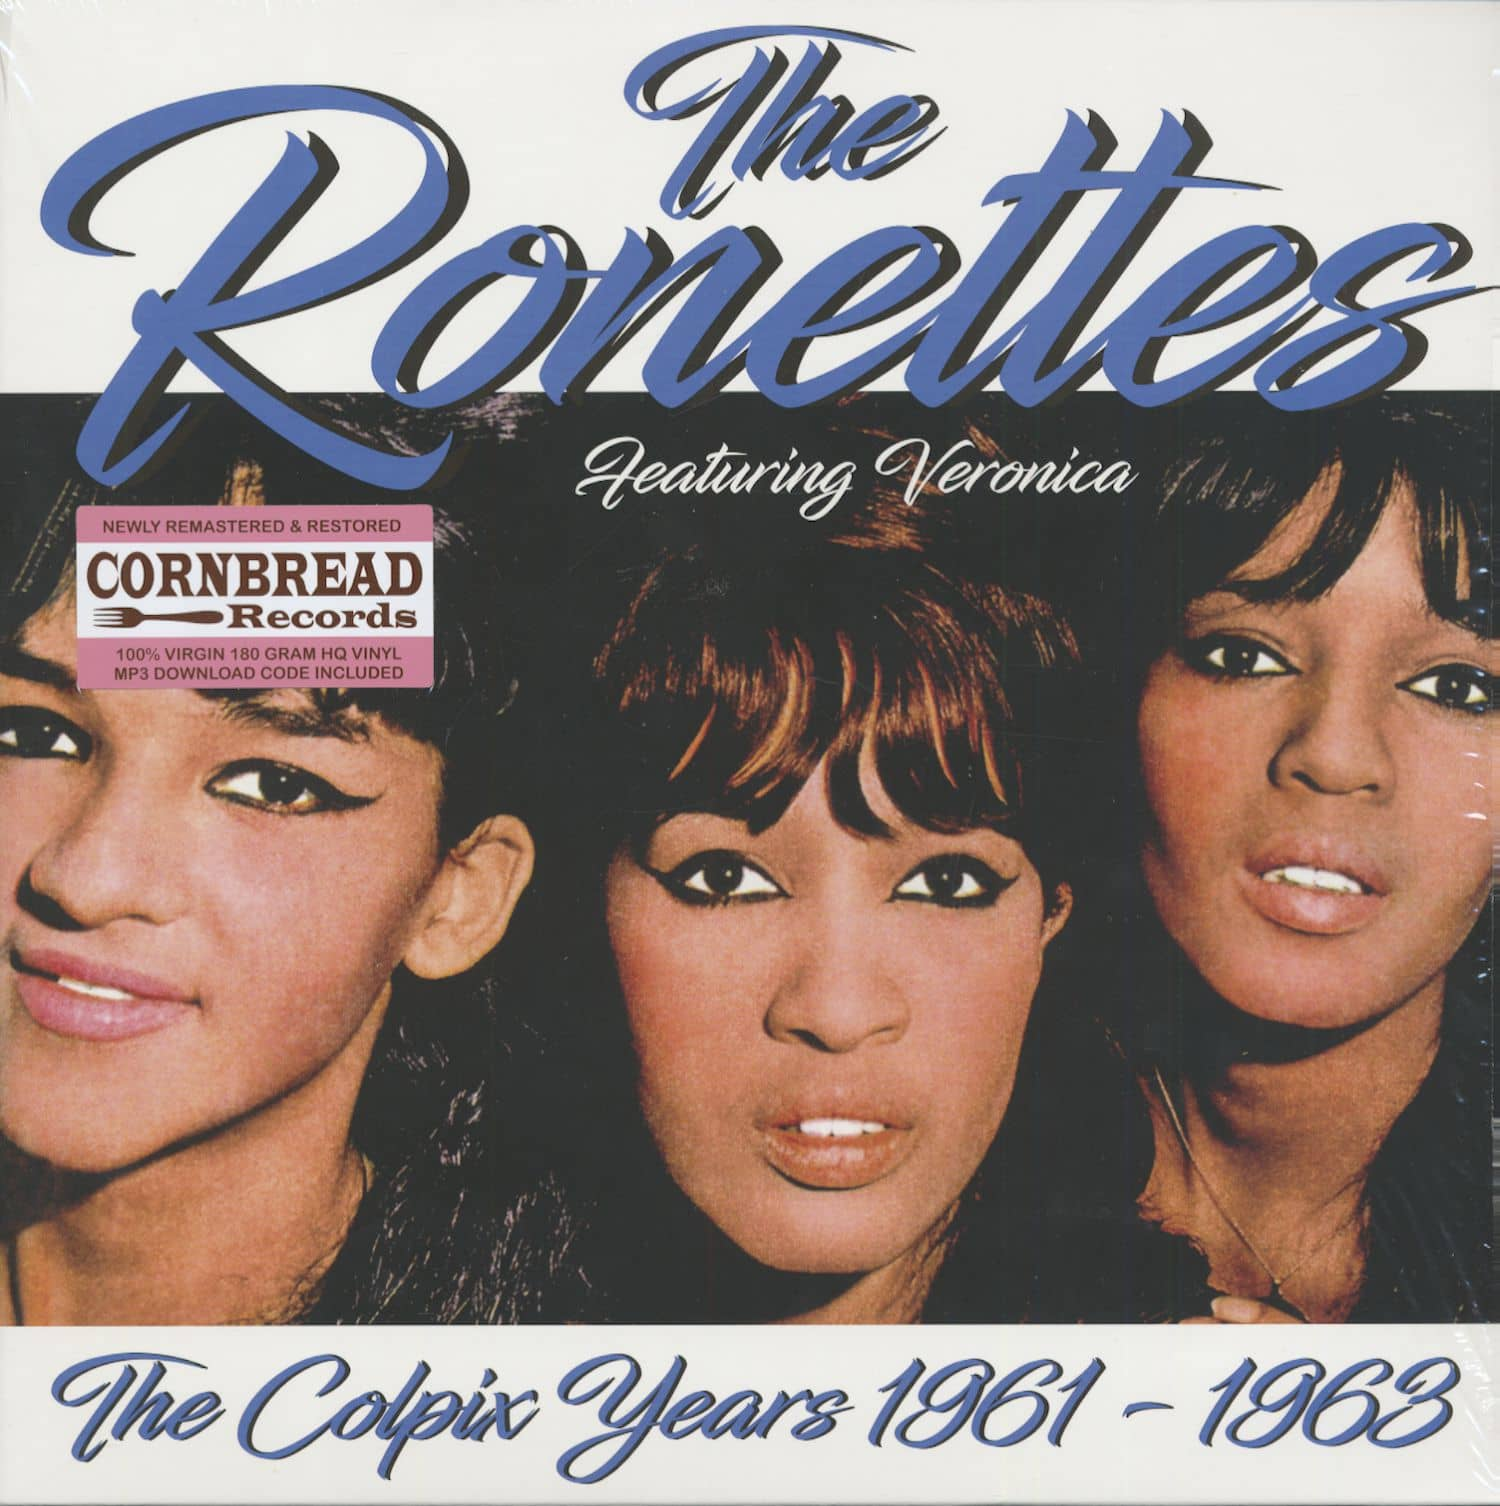 The Ronettes Lp The Colpix Years 1961 1963 Lp 180g